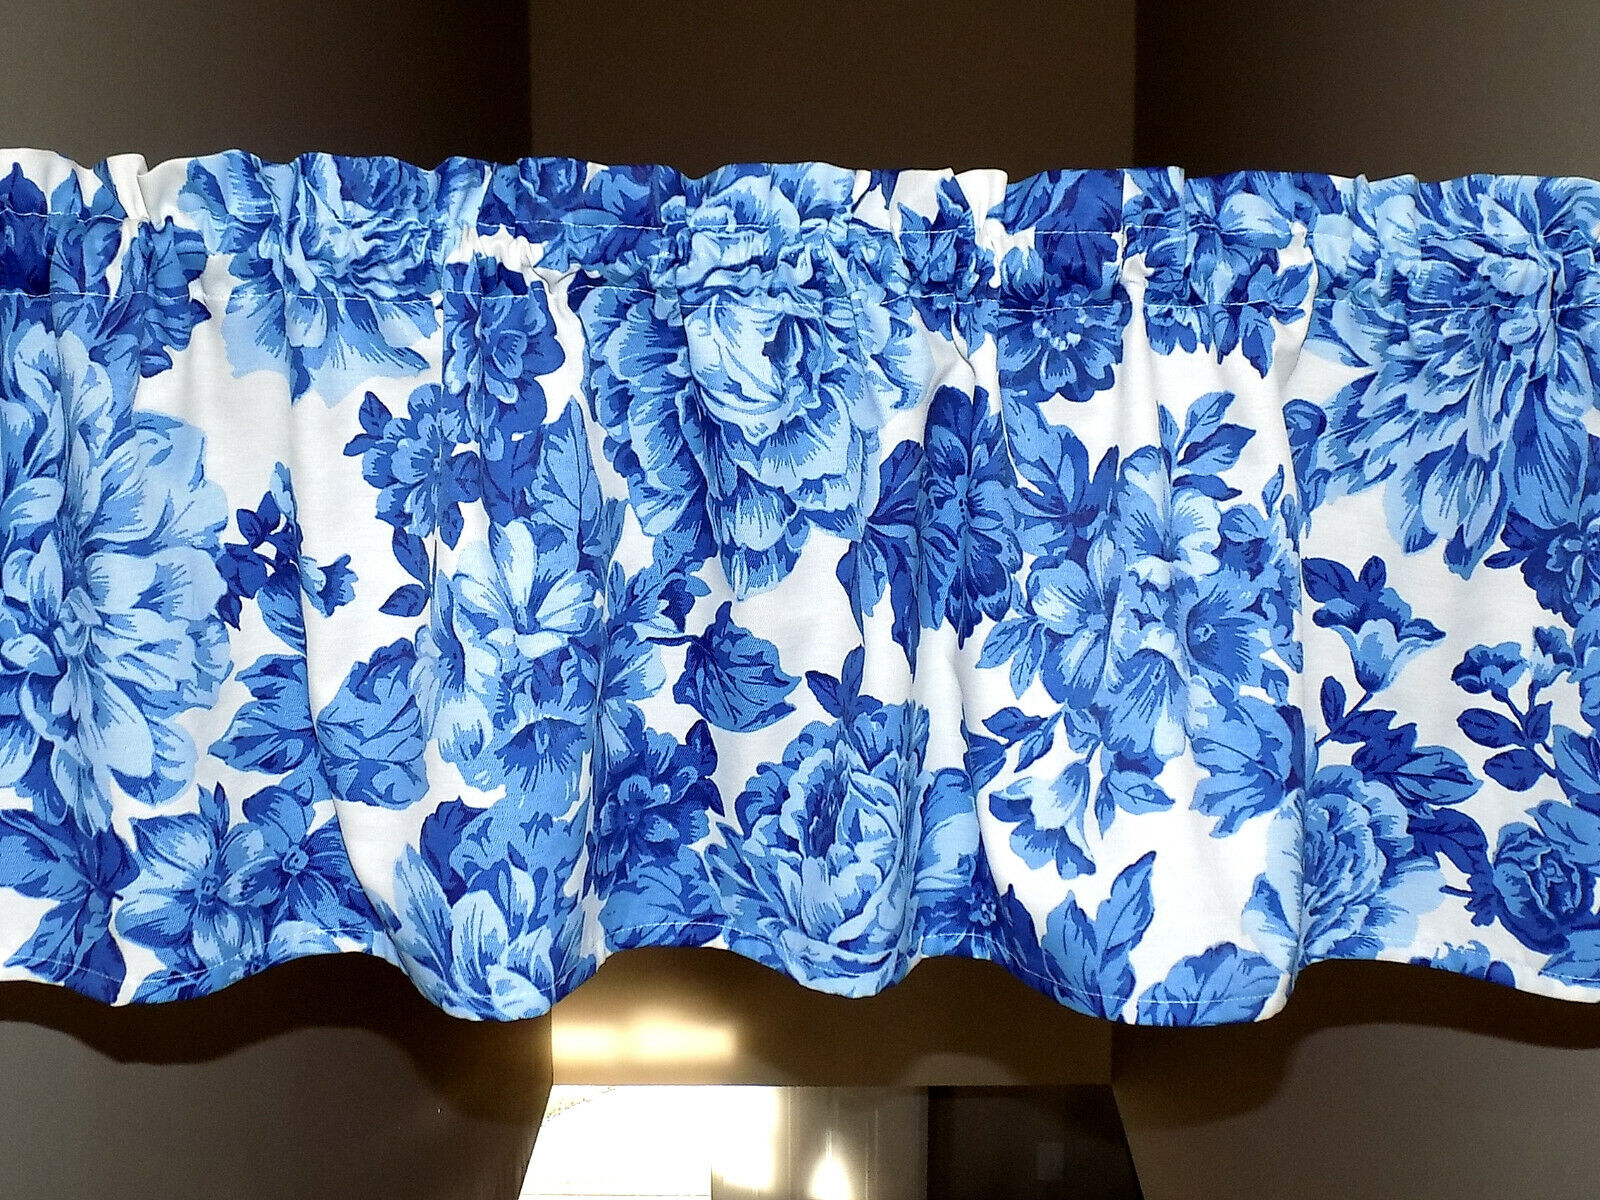 Pioneer Woman Heritage Blue White Floral Valance Curtain Win